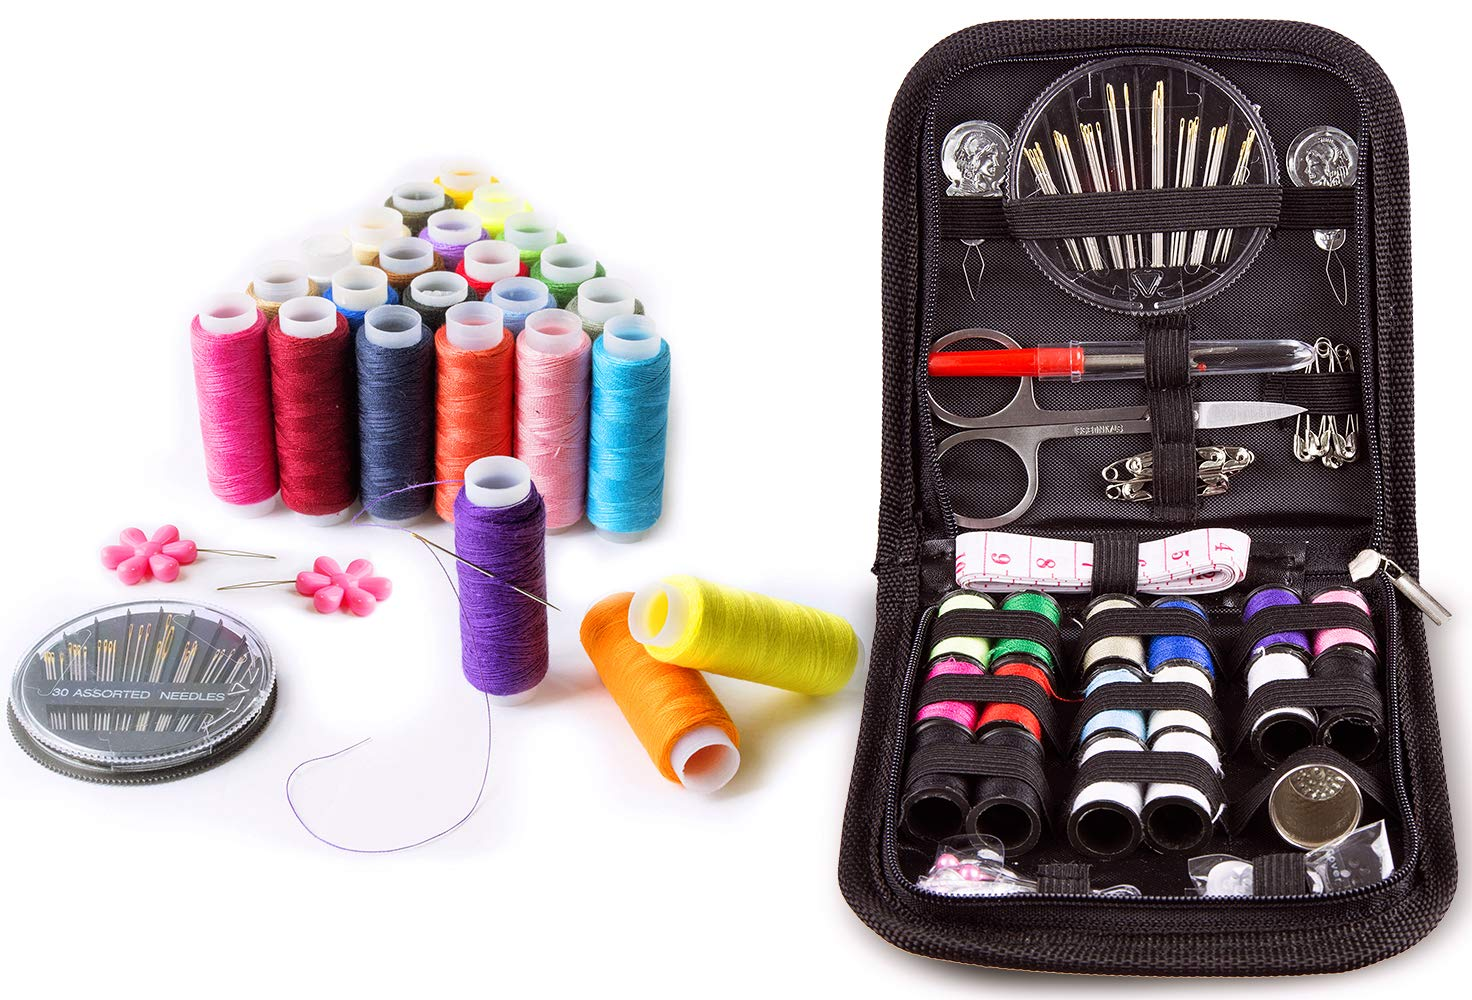 Sewing KIT, Tackle Any Fashion Emergency - Clothing Repairs at Home & in The Office. Highly-Rated Mini Sew Kit for Travel Trips. Mending Supplies & Accessories (Multicolored 1, Bundle-SK-BL&ST) by VELLOSTAR